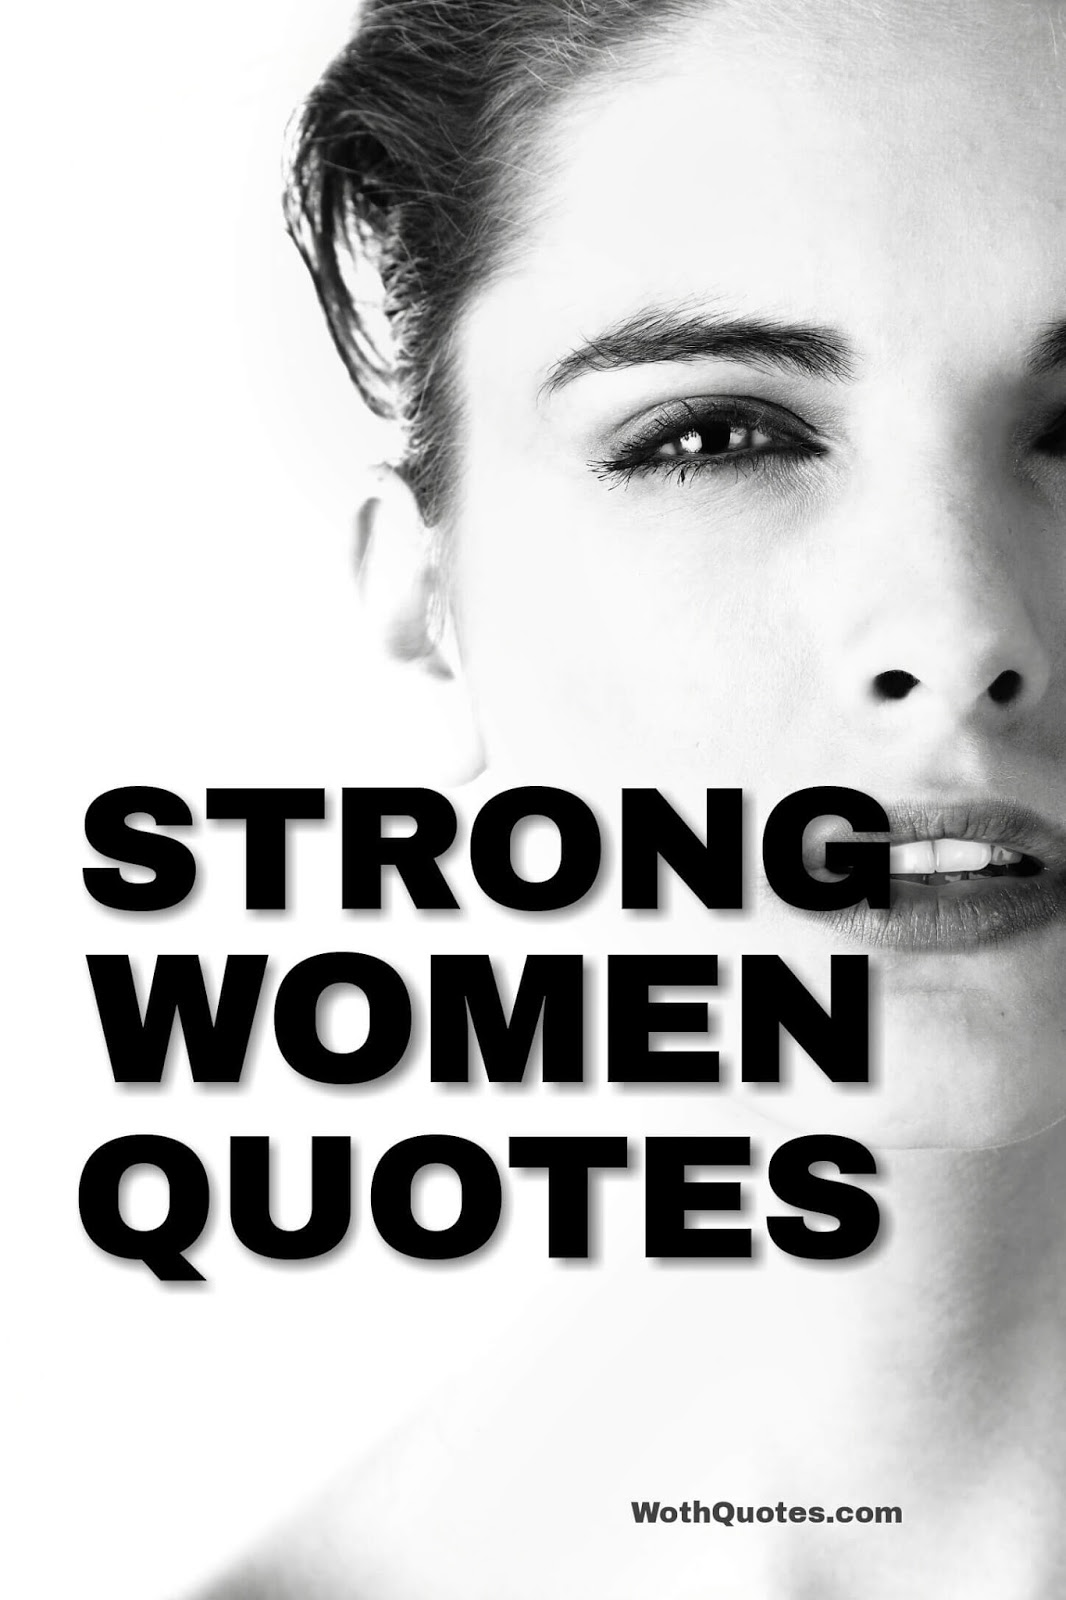 Women Quotes Top 128 Quotes About Strong Women  Wothquotes  Wothquotes Collection